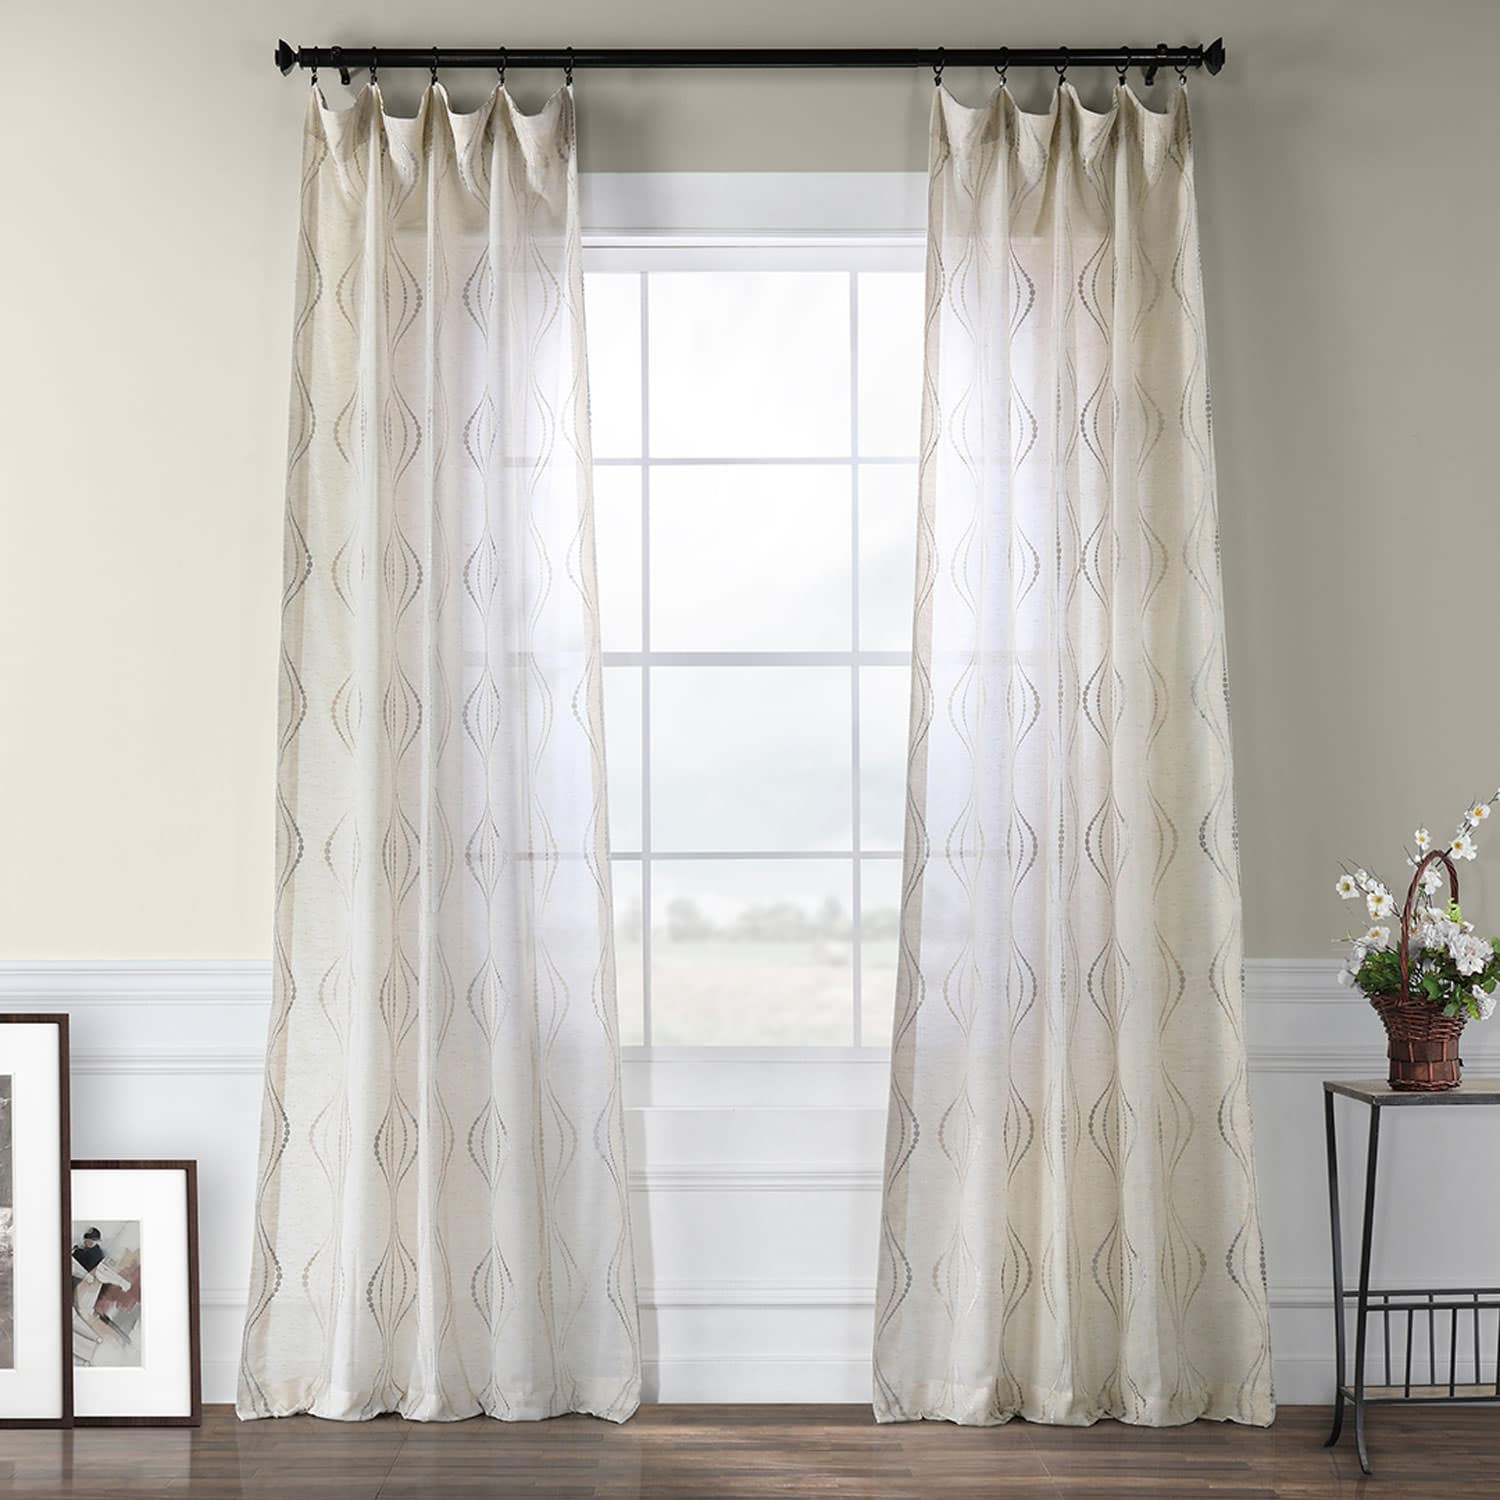 printed faux tab eos custom heading linen concealed top made curtains newspaper